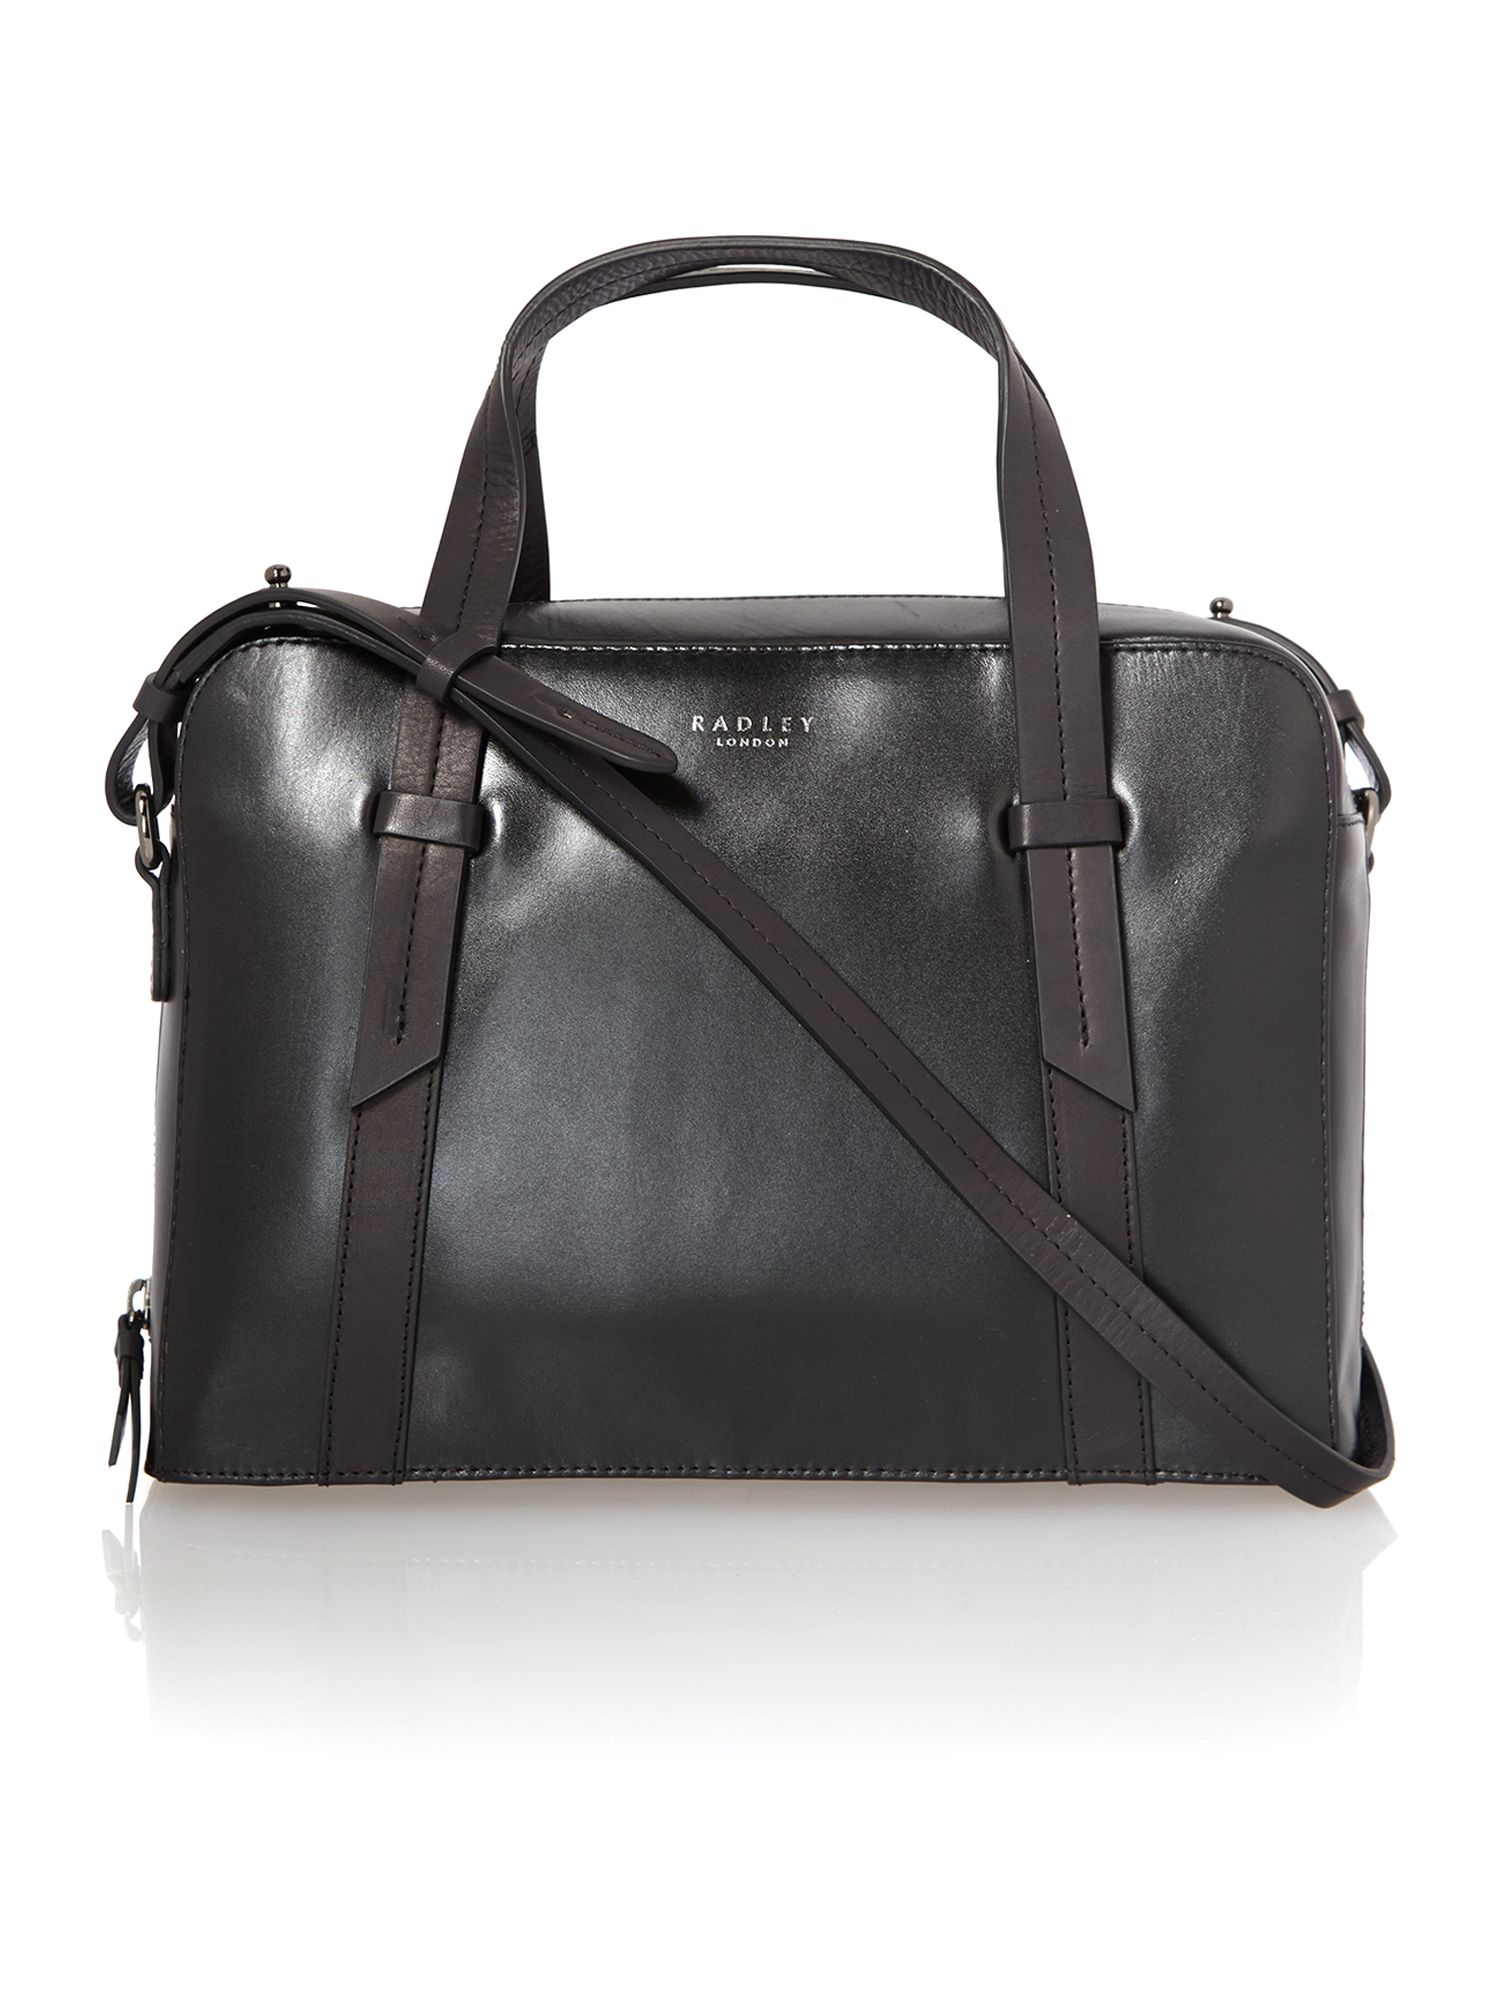 Malton black medium cross body tote bag